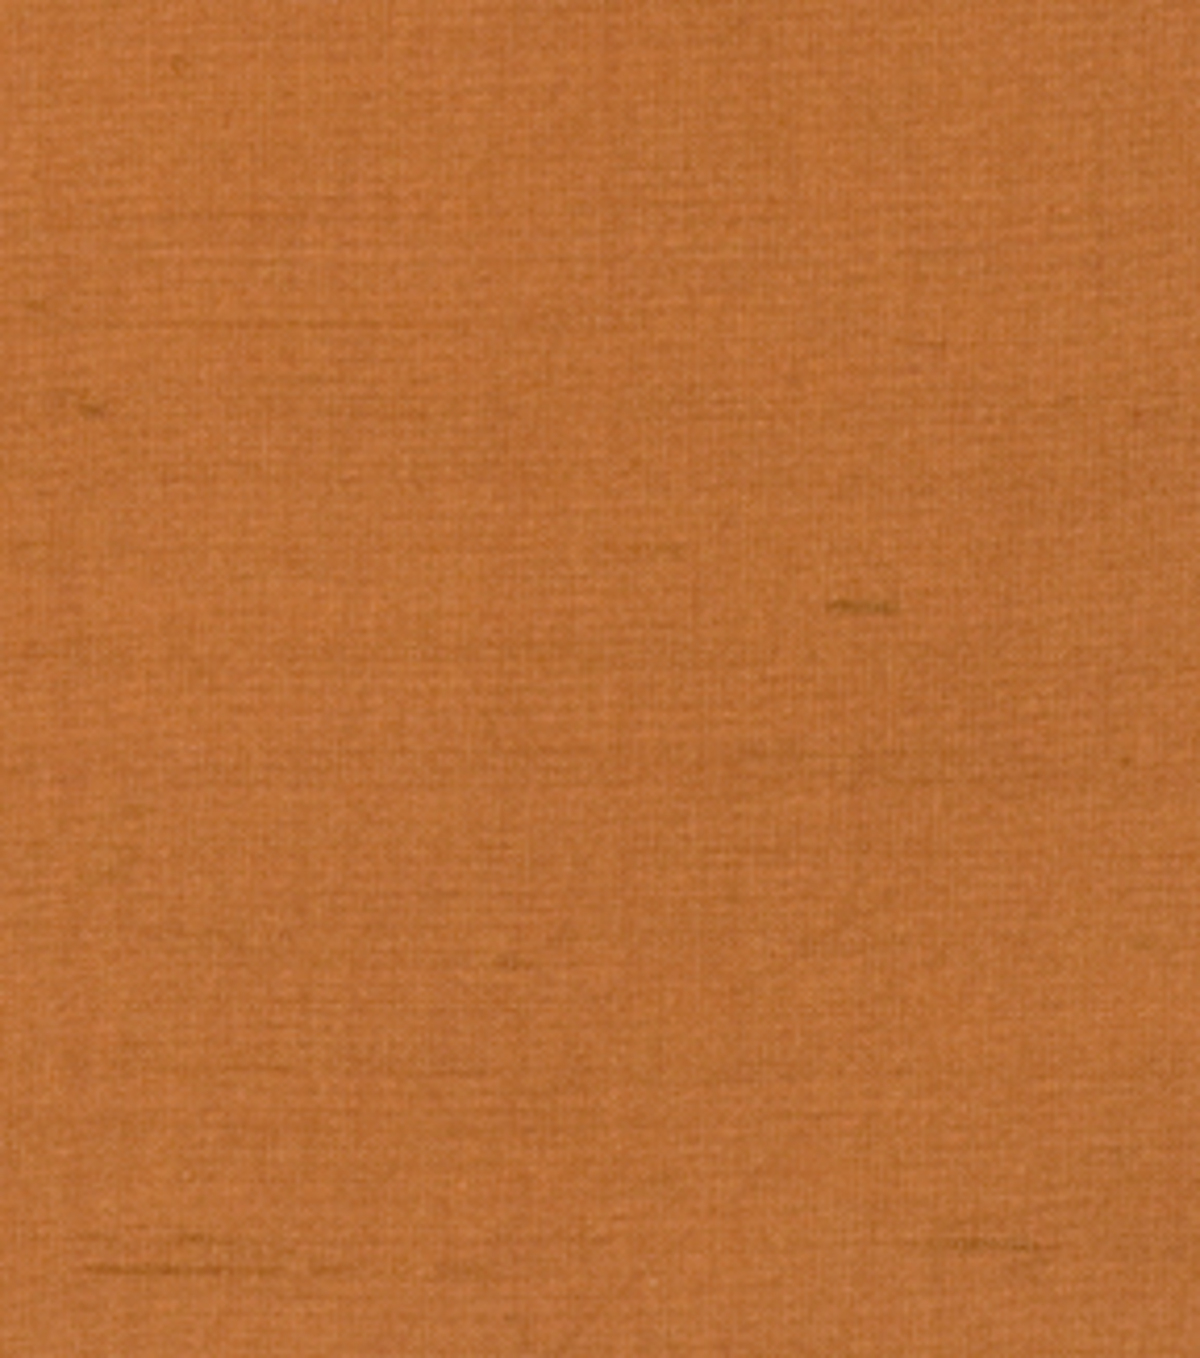 Home Decor 8\u0022x8\u0022 Fabric Swatch-Signature Series Duppioni Silk Salmon